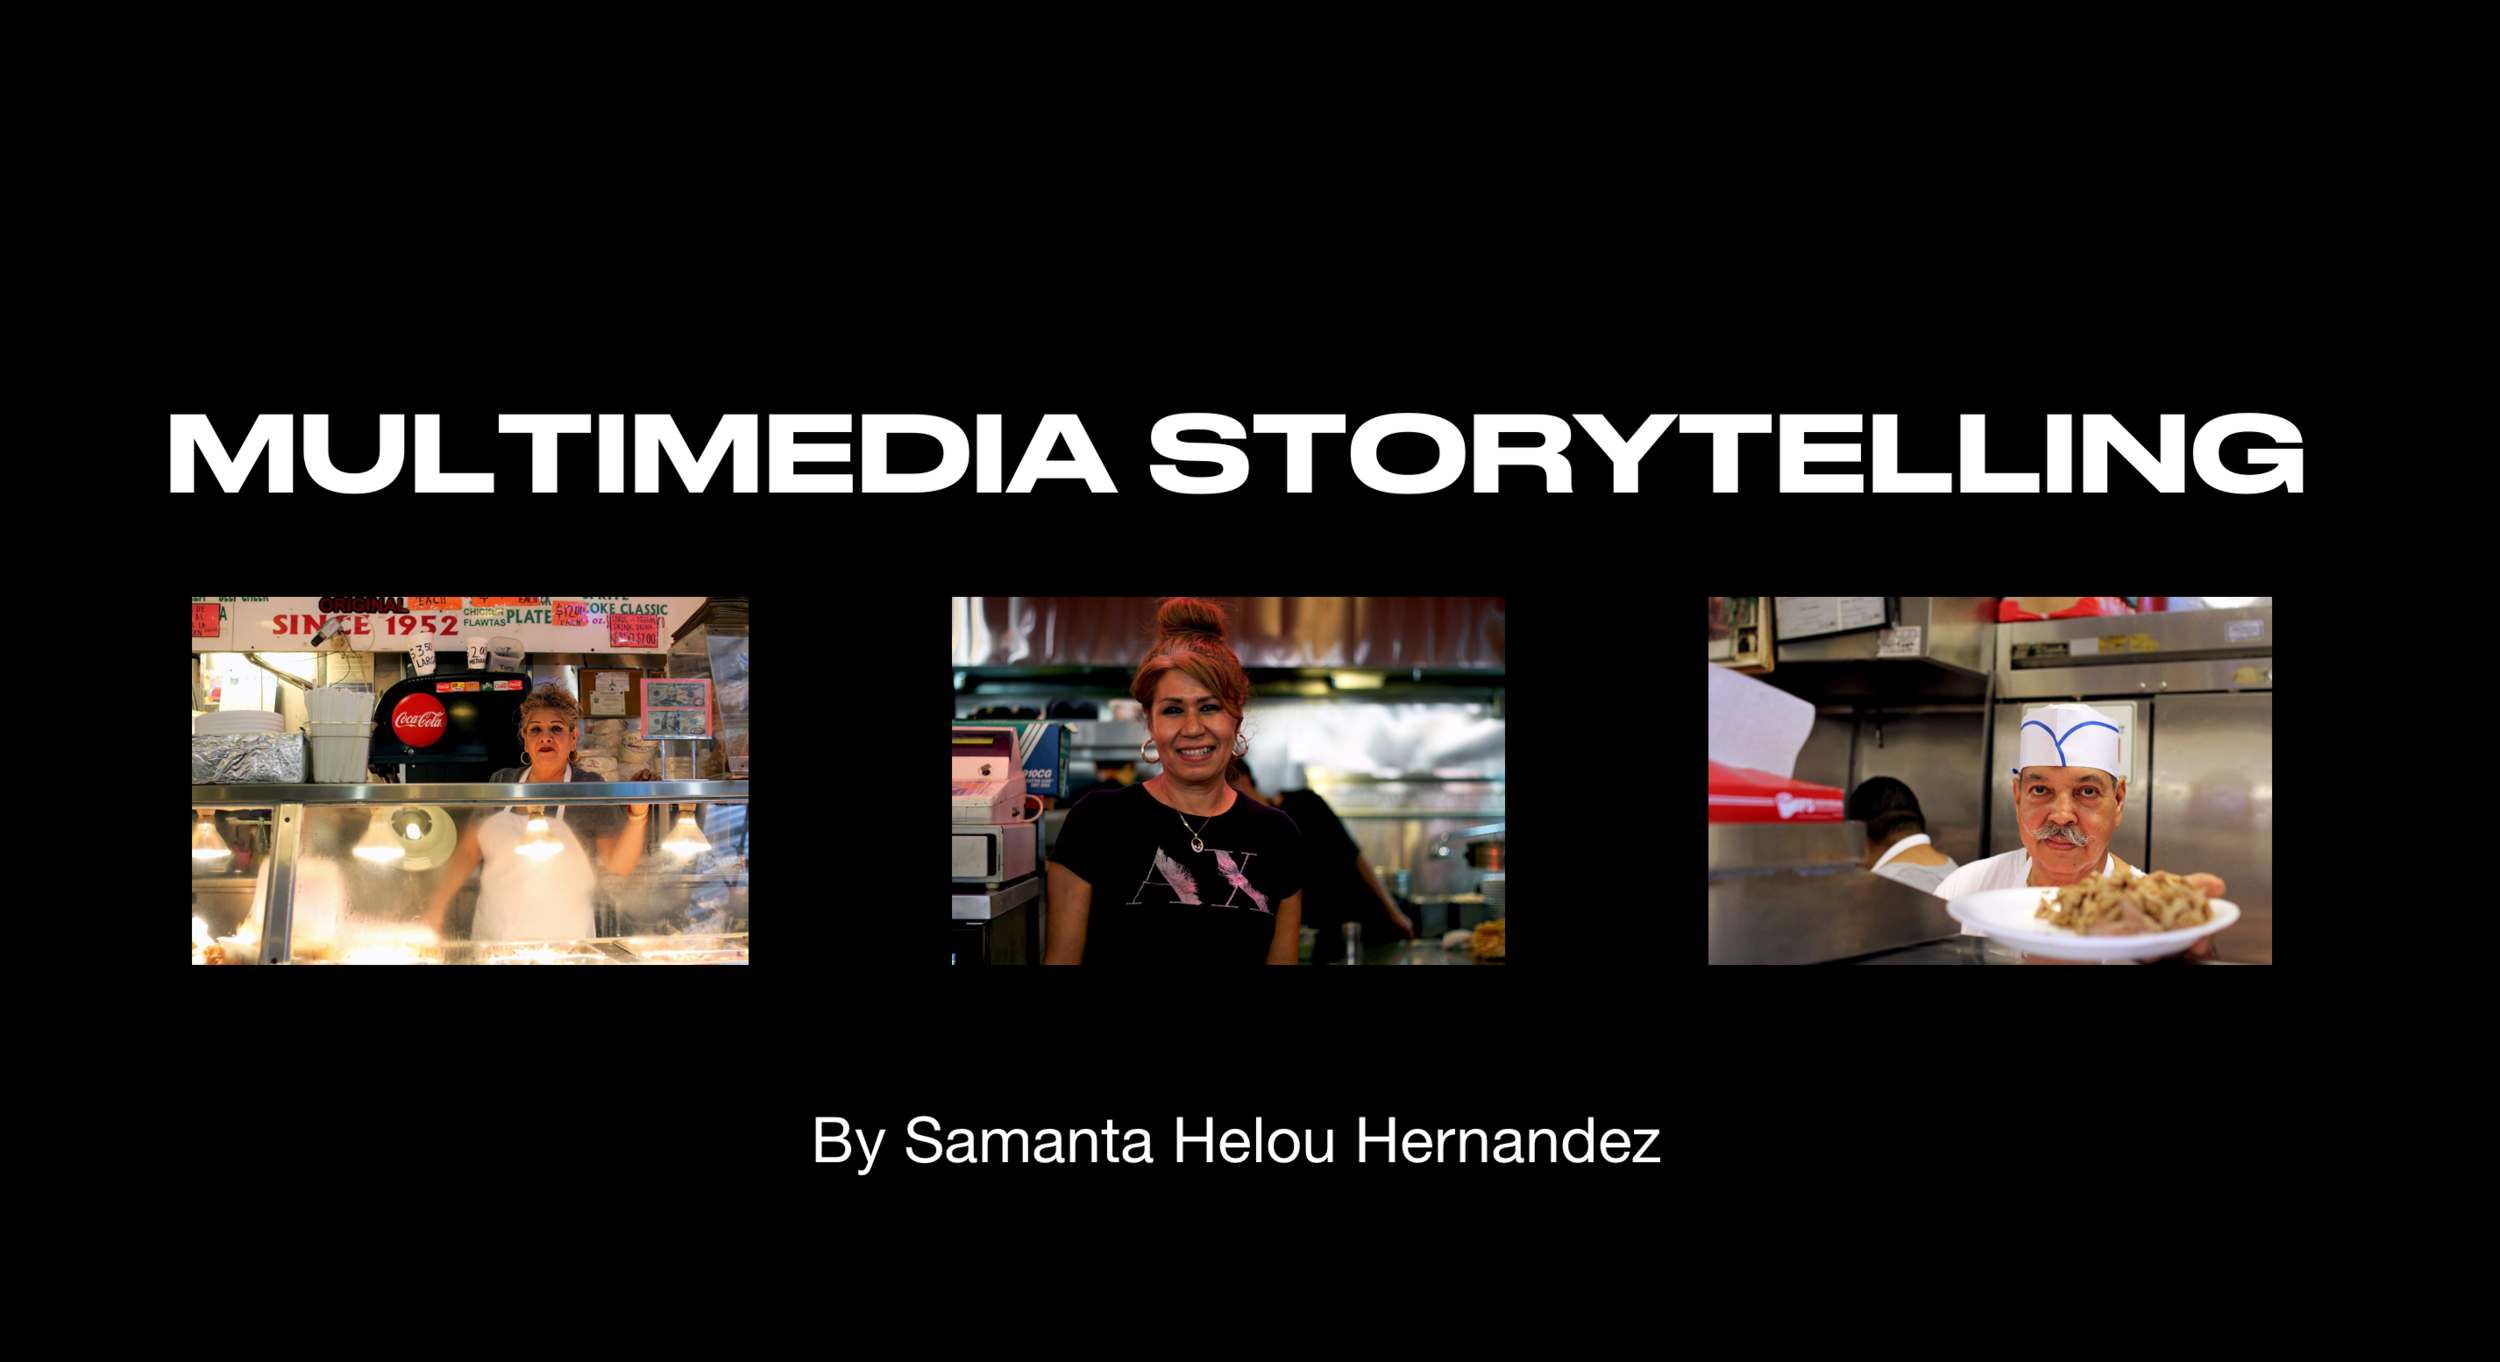 Taught a seminar on multimedia storytelling for UCR's MFA residency.